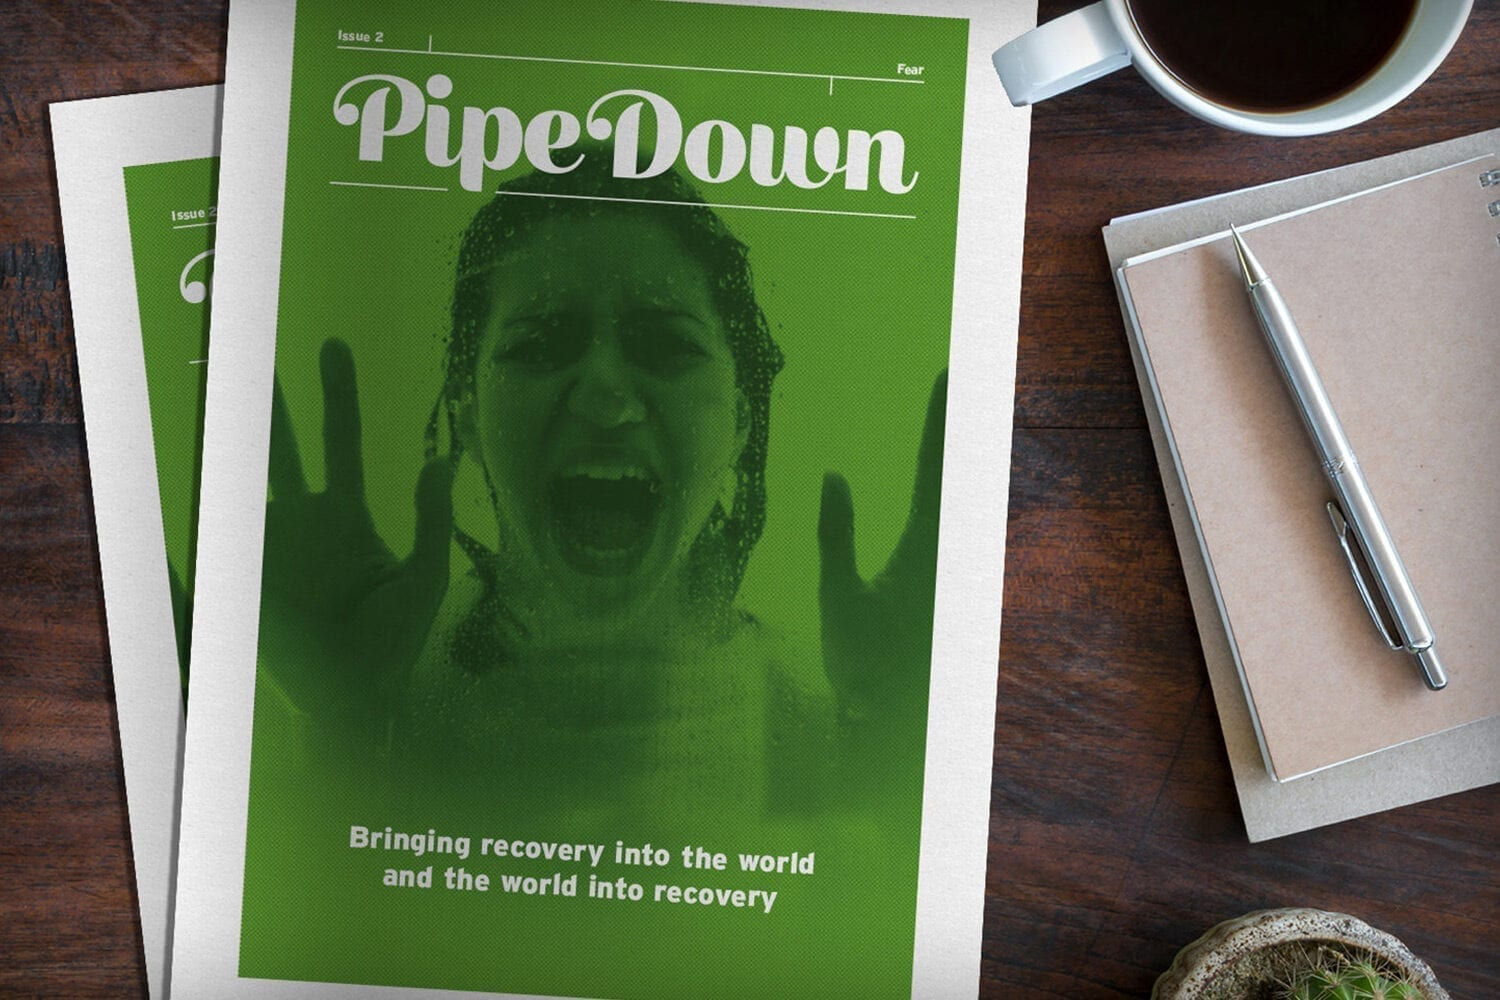 Pipedown-4